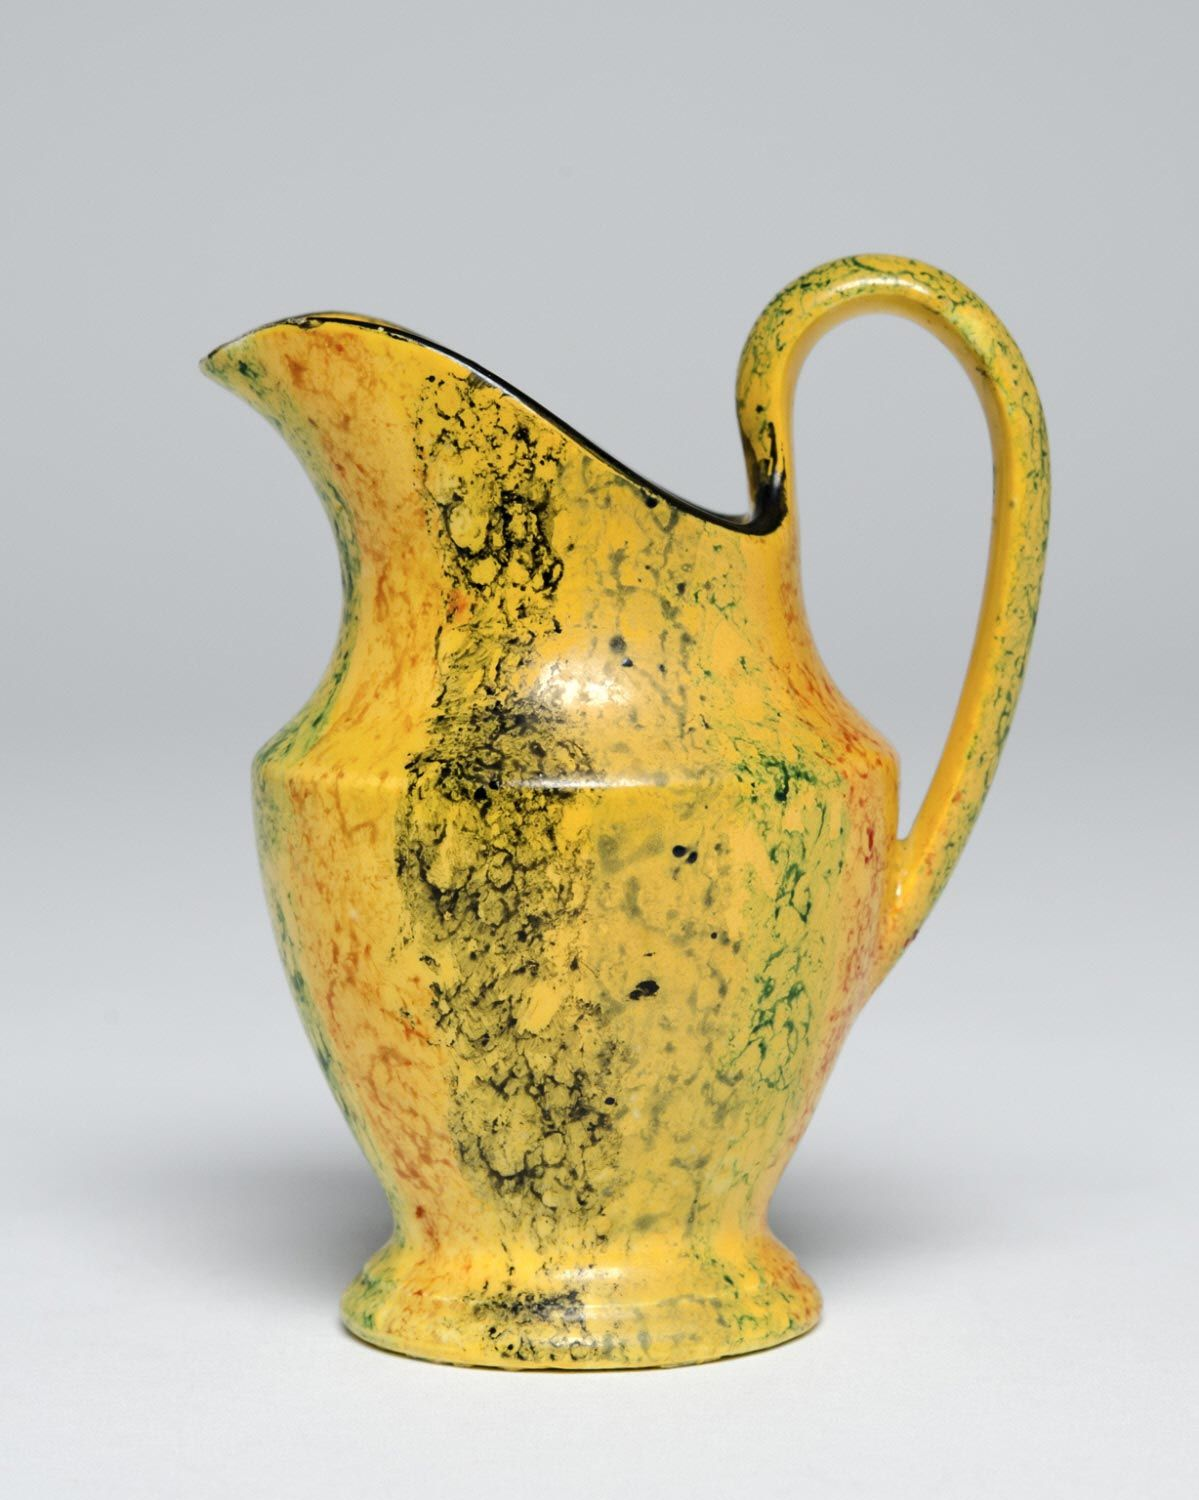 Miniature Pitcher Made by Wedgwood factory c. 1800